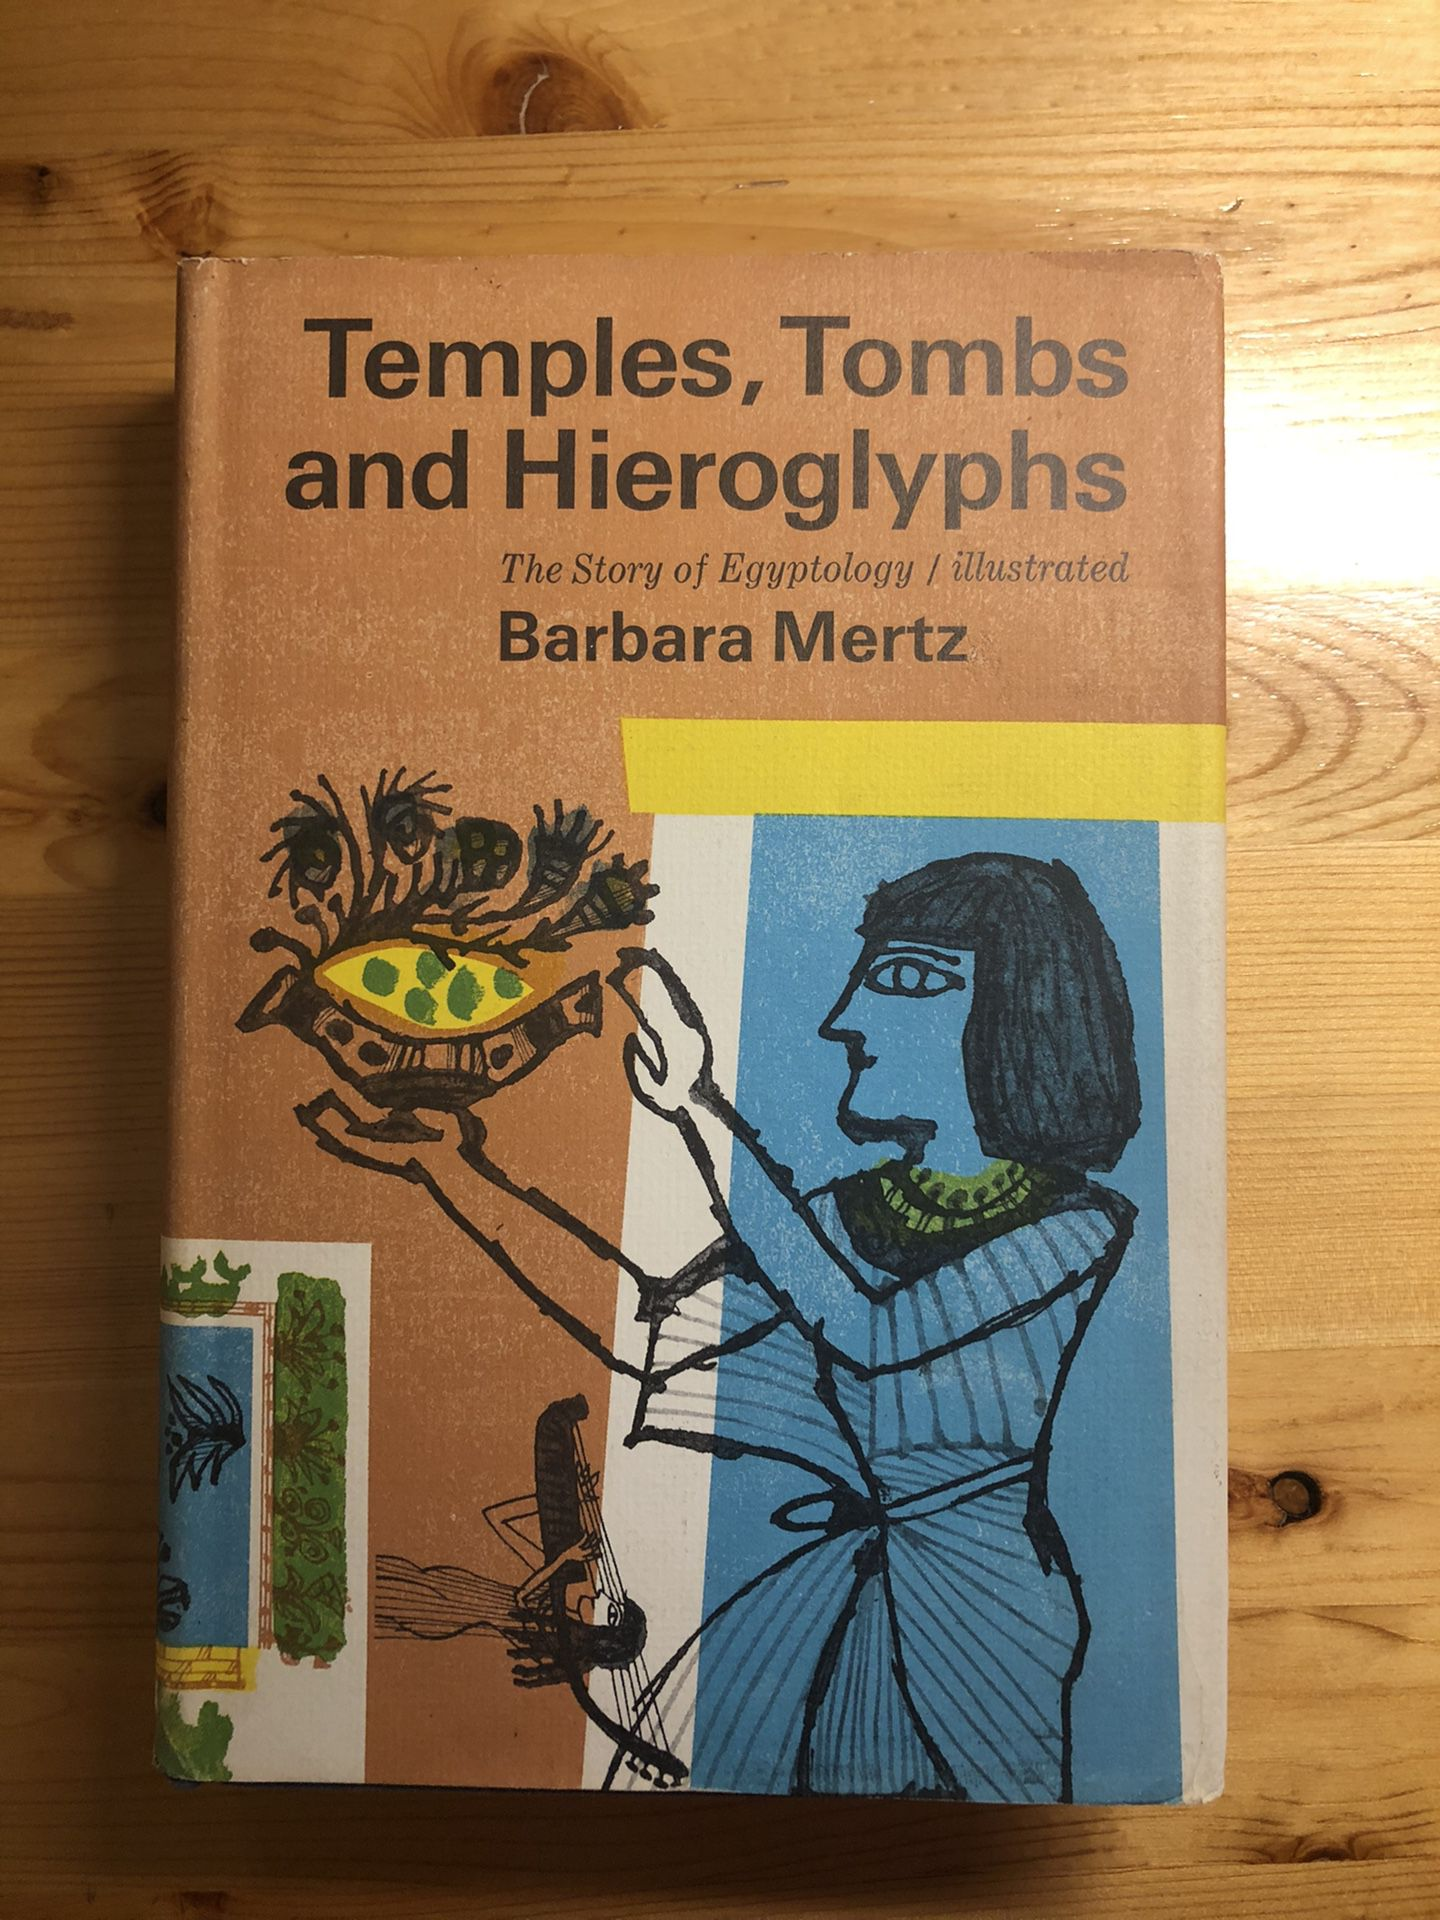 Temples, Tombs, and Hieroglyphs - The Story of Egyptology / Illustrated